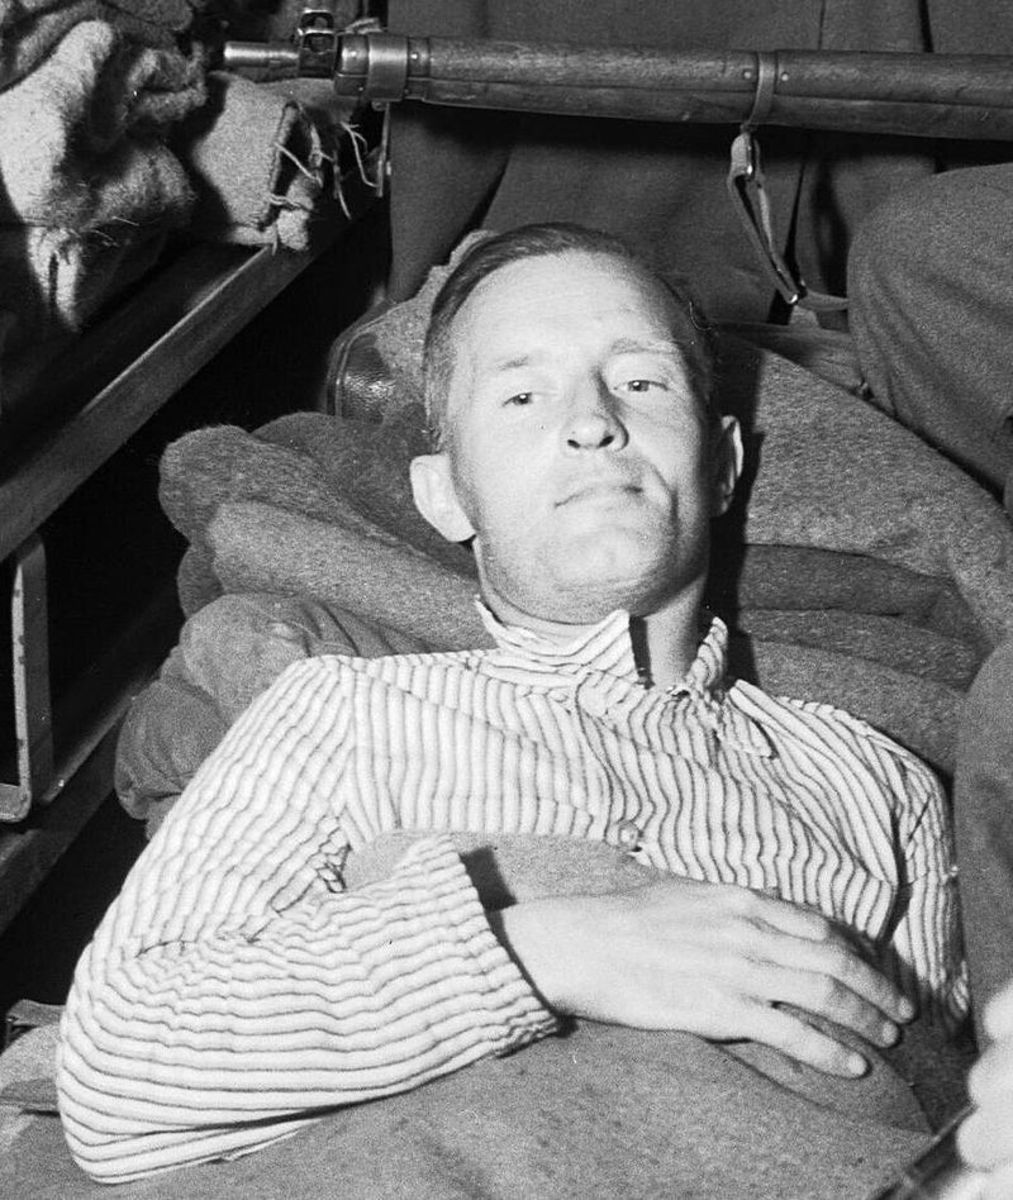 William Joyce after his capture nursing what must have been a painful backside.